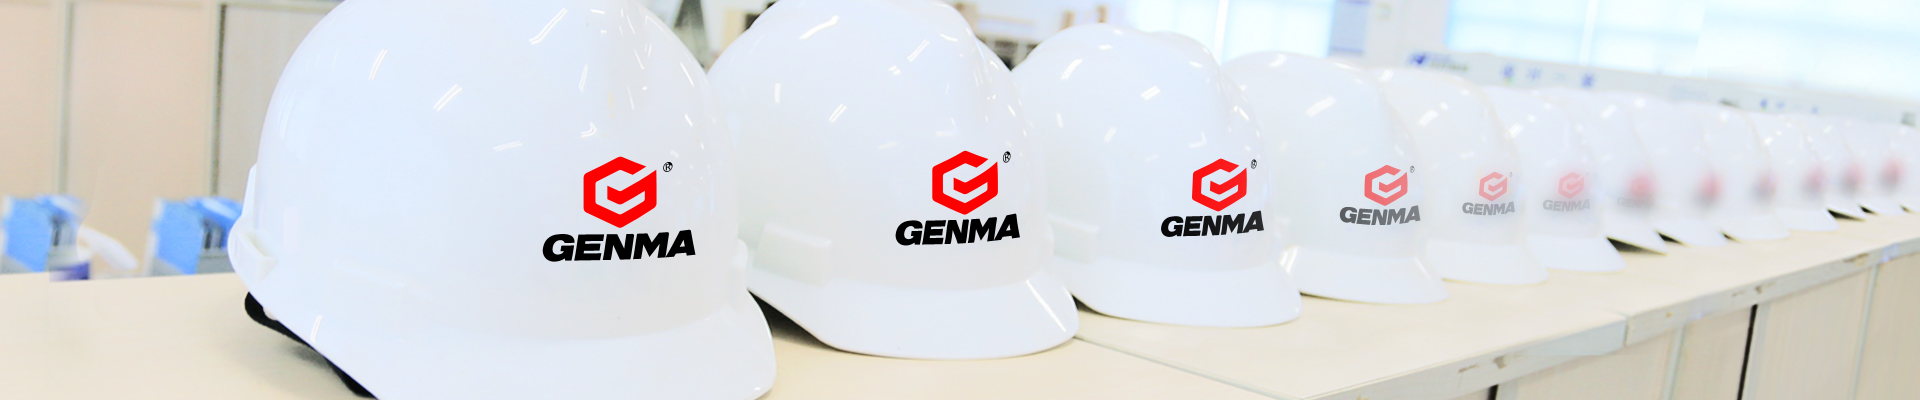 Genma Ship Loader to Balikpapan Coal Terminal (BCT)